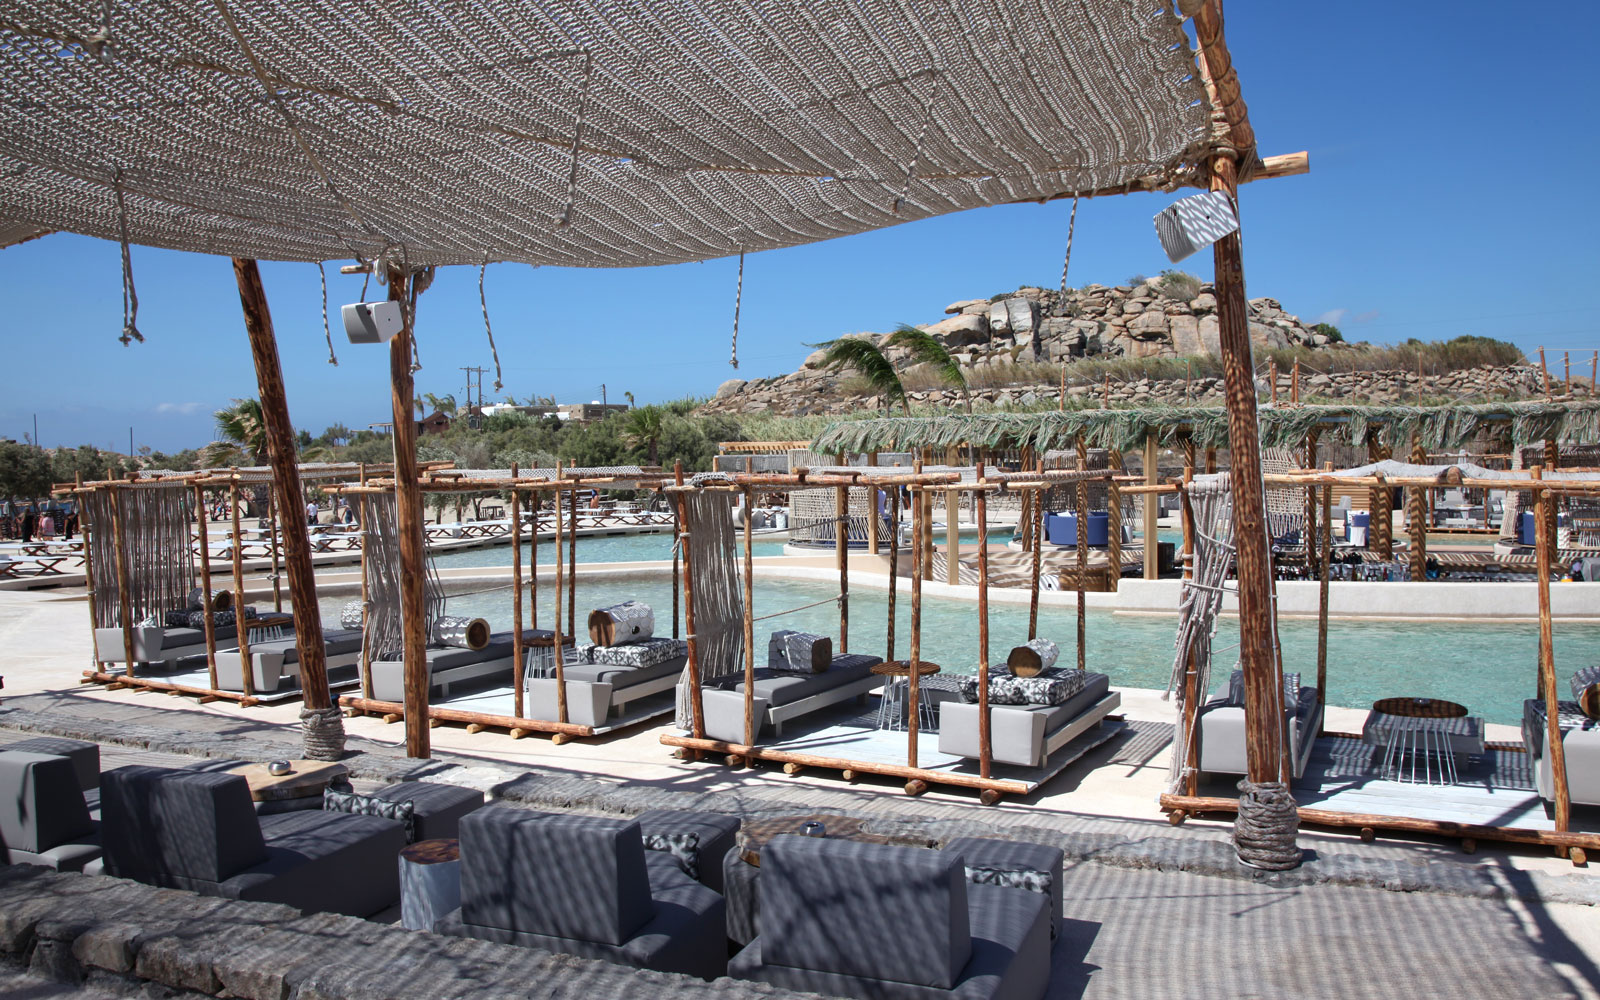 New Mykonos Day Club Opens Europe's Biggest Beachfront Pool